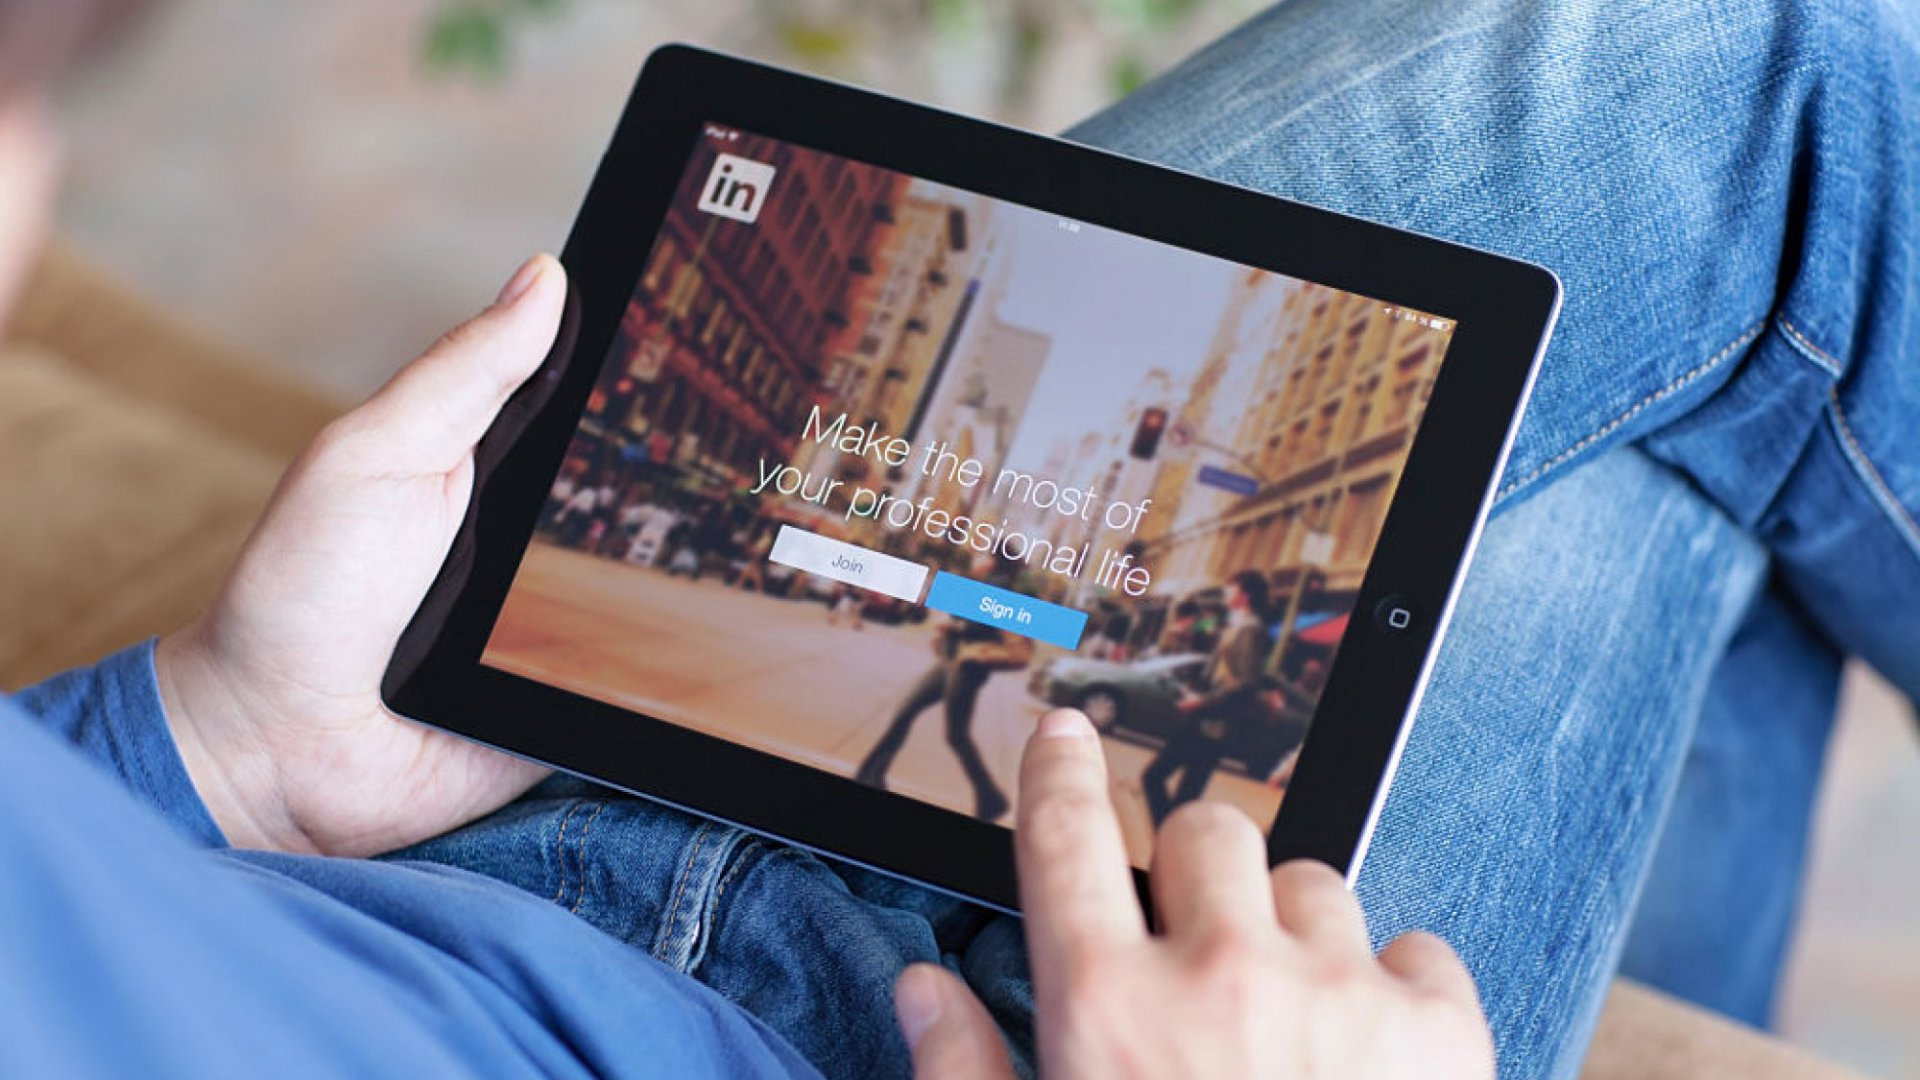 LinkedIn Rolls Out 2 New Features: 'Stories' and Video Meetings